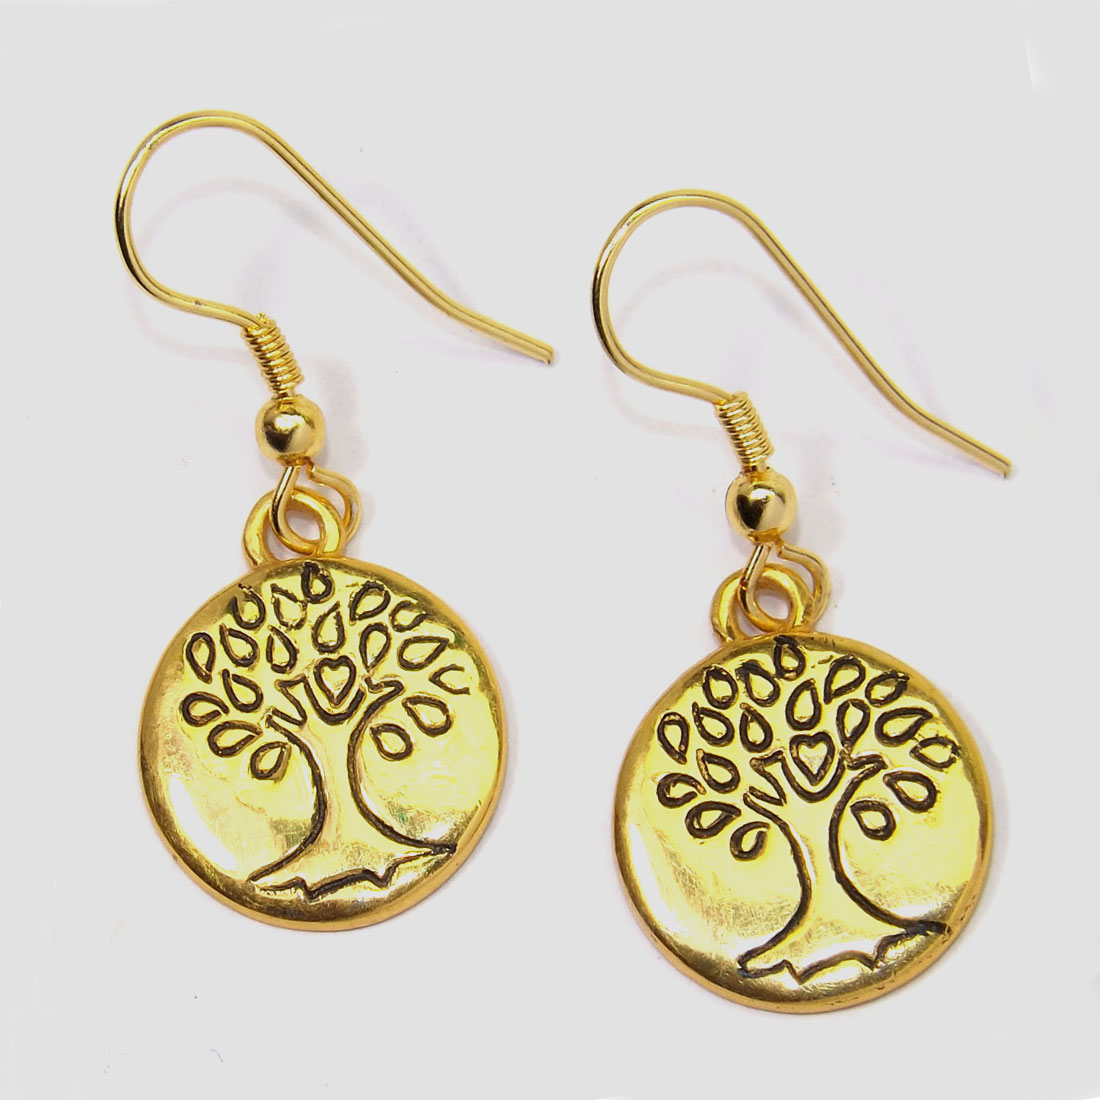 Brass Earrings A - PBJ987-Tree of Life Made in Brass with Gold Plated Vermeil Earr